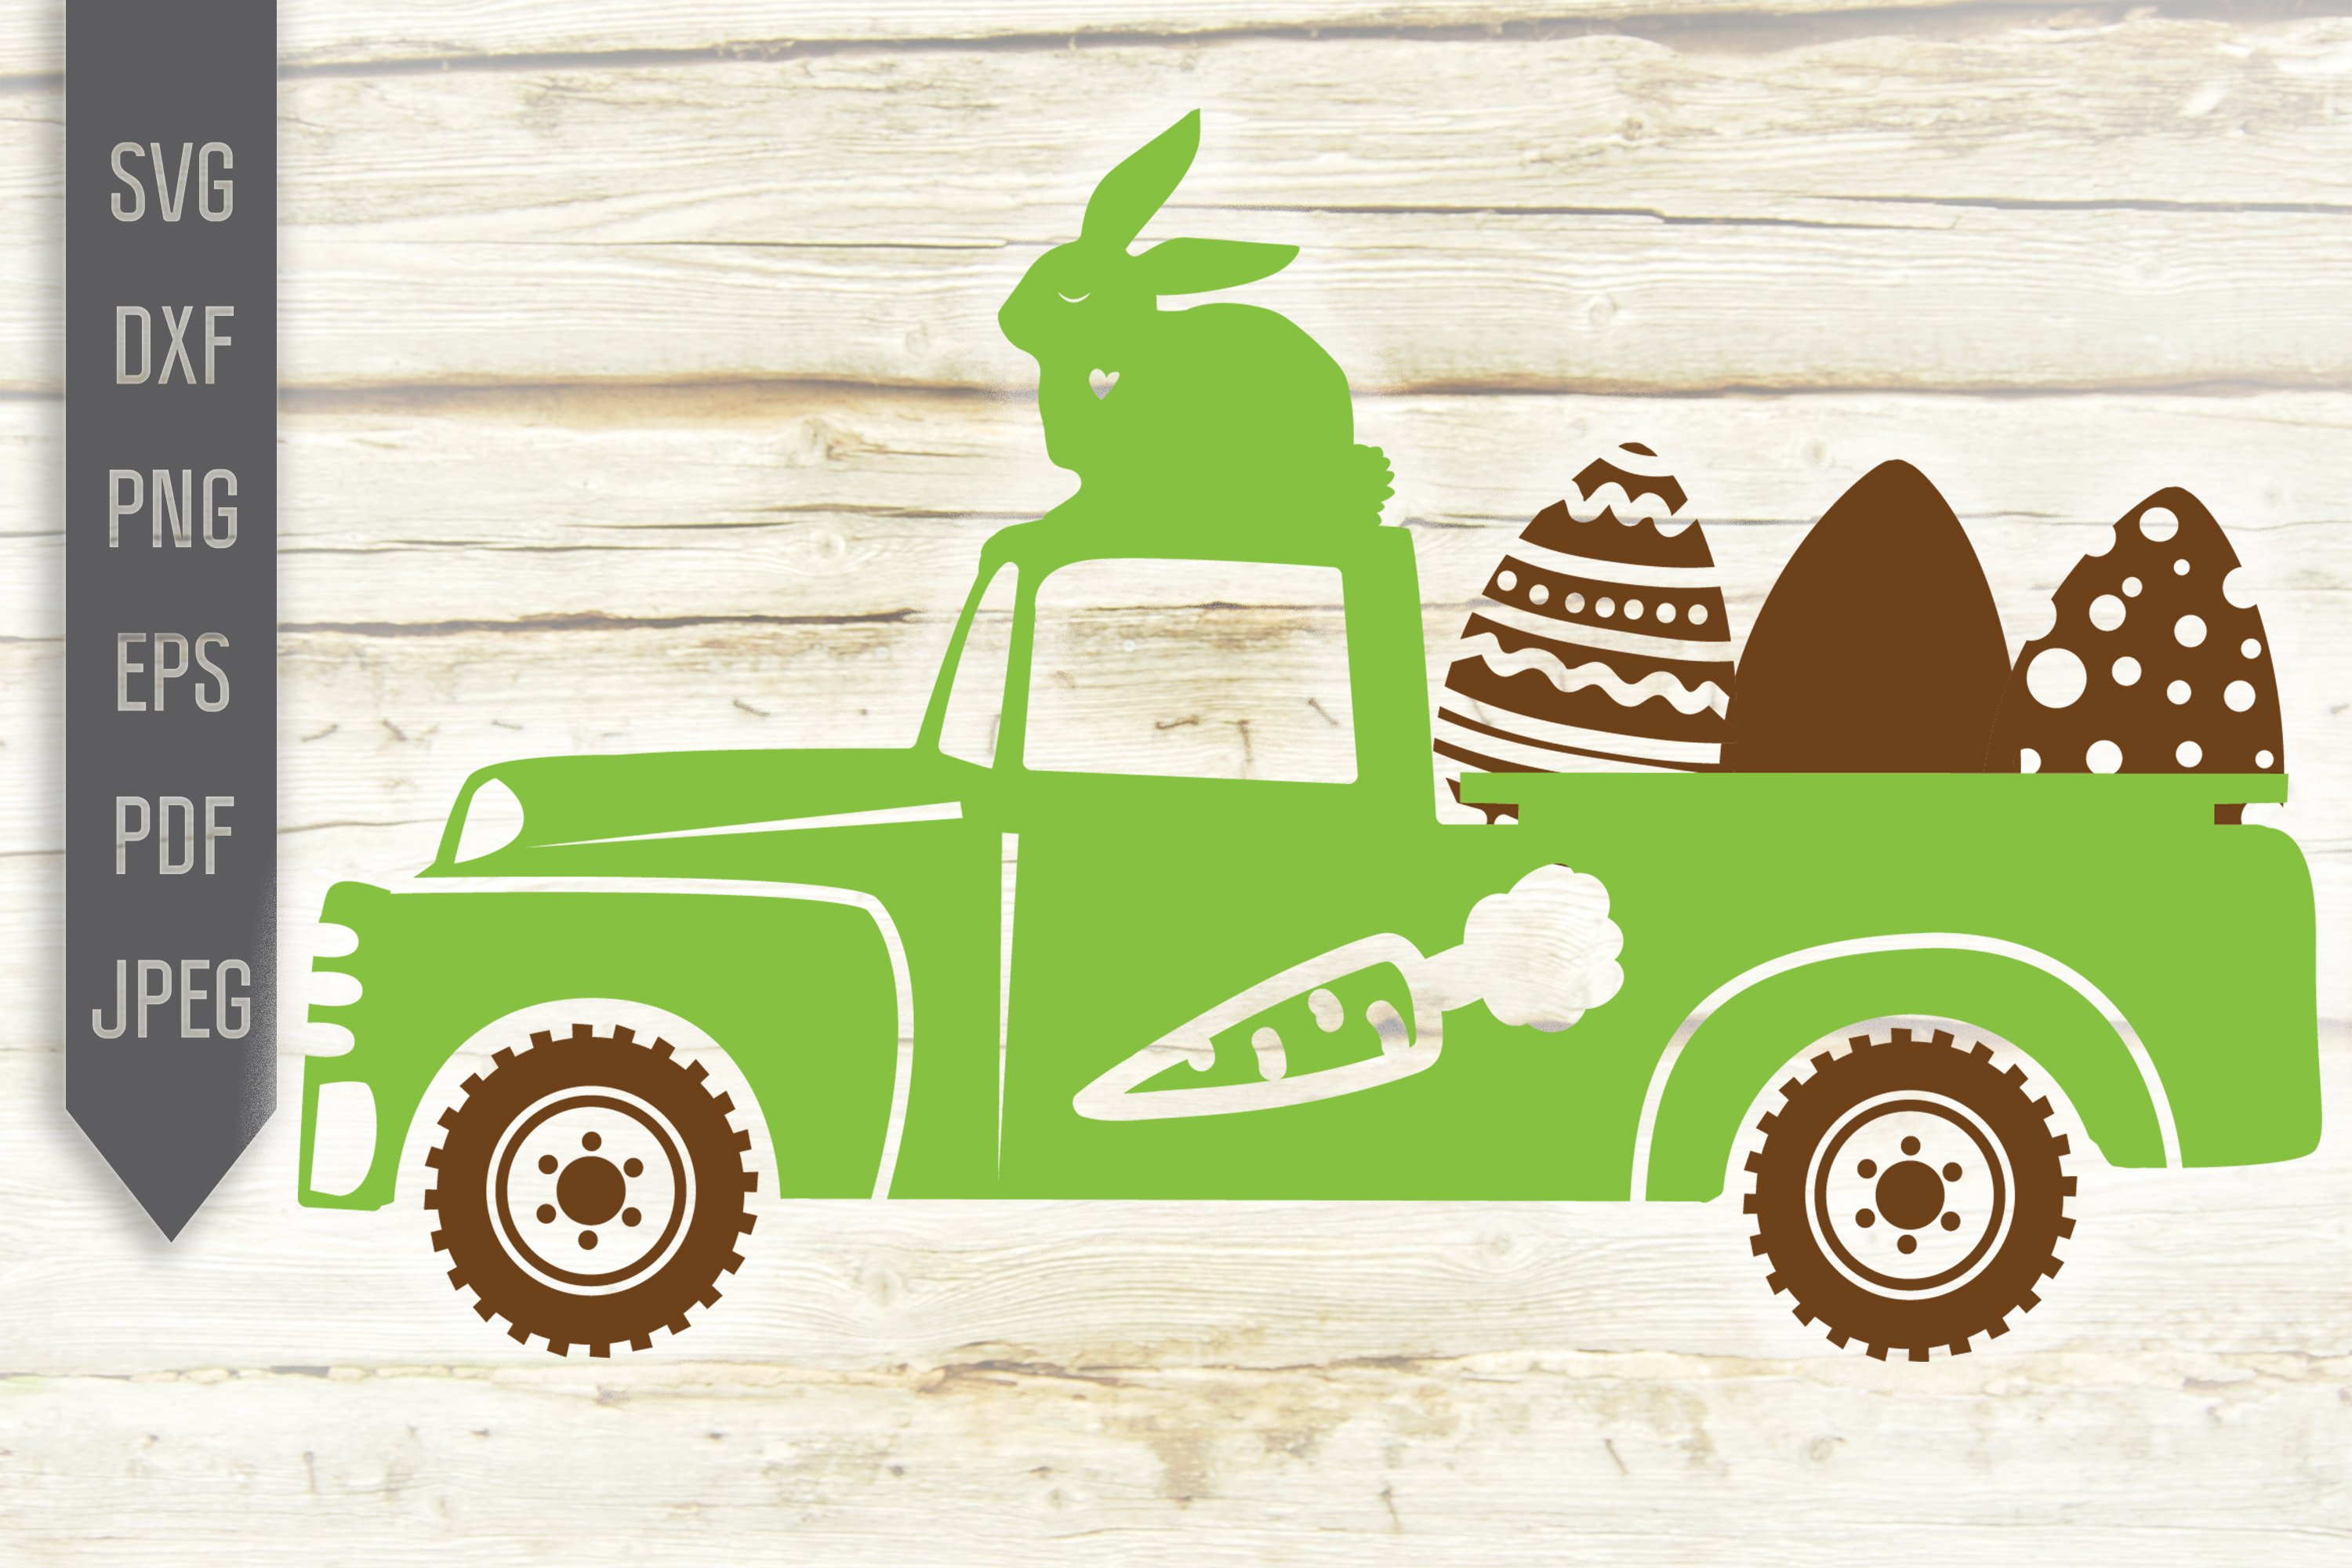 Download Free Green Easter Egg Truck Easter Bunny Graphic By Svglaboratory for Cricut Explore, Silhouette and other cutting machines.